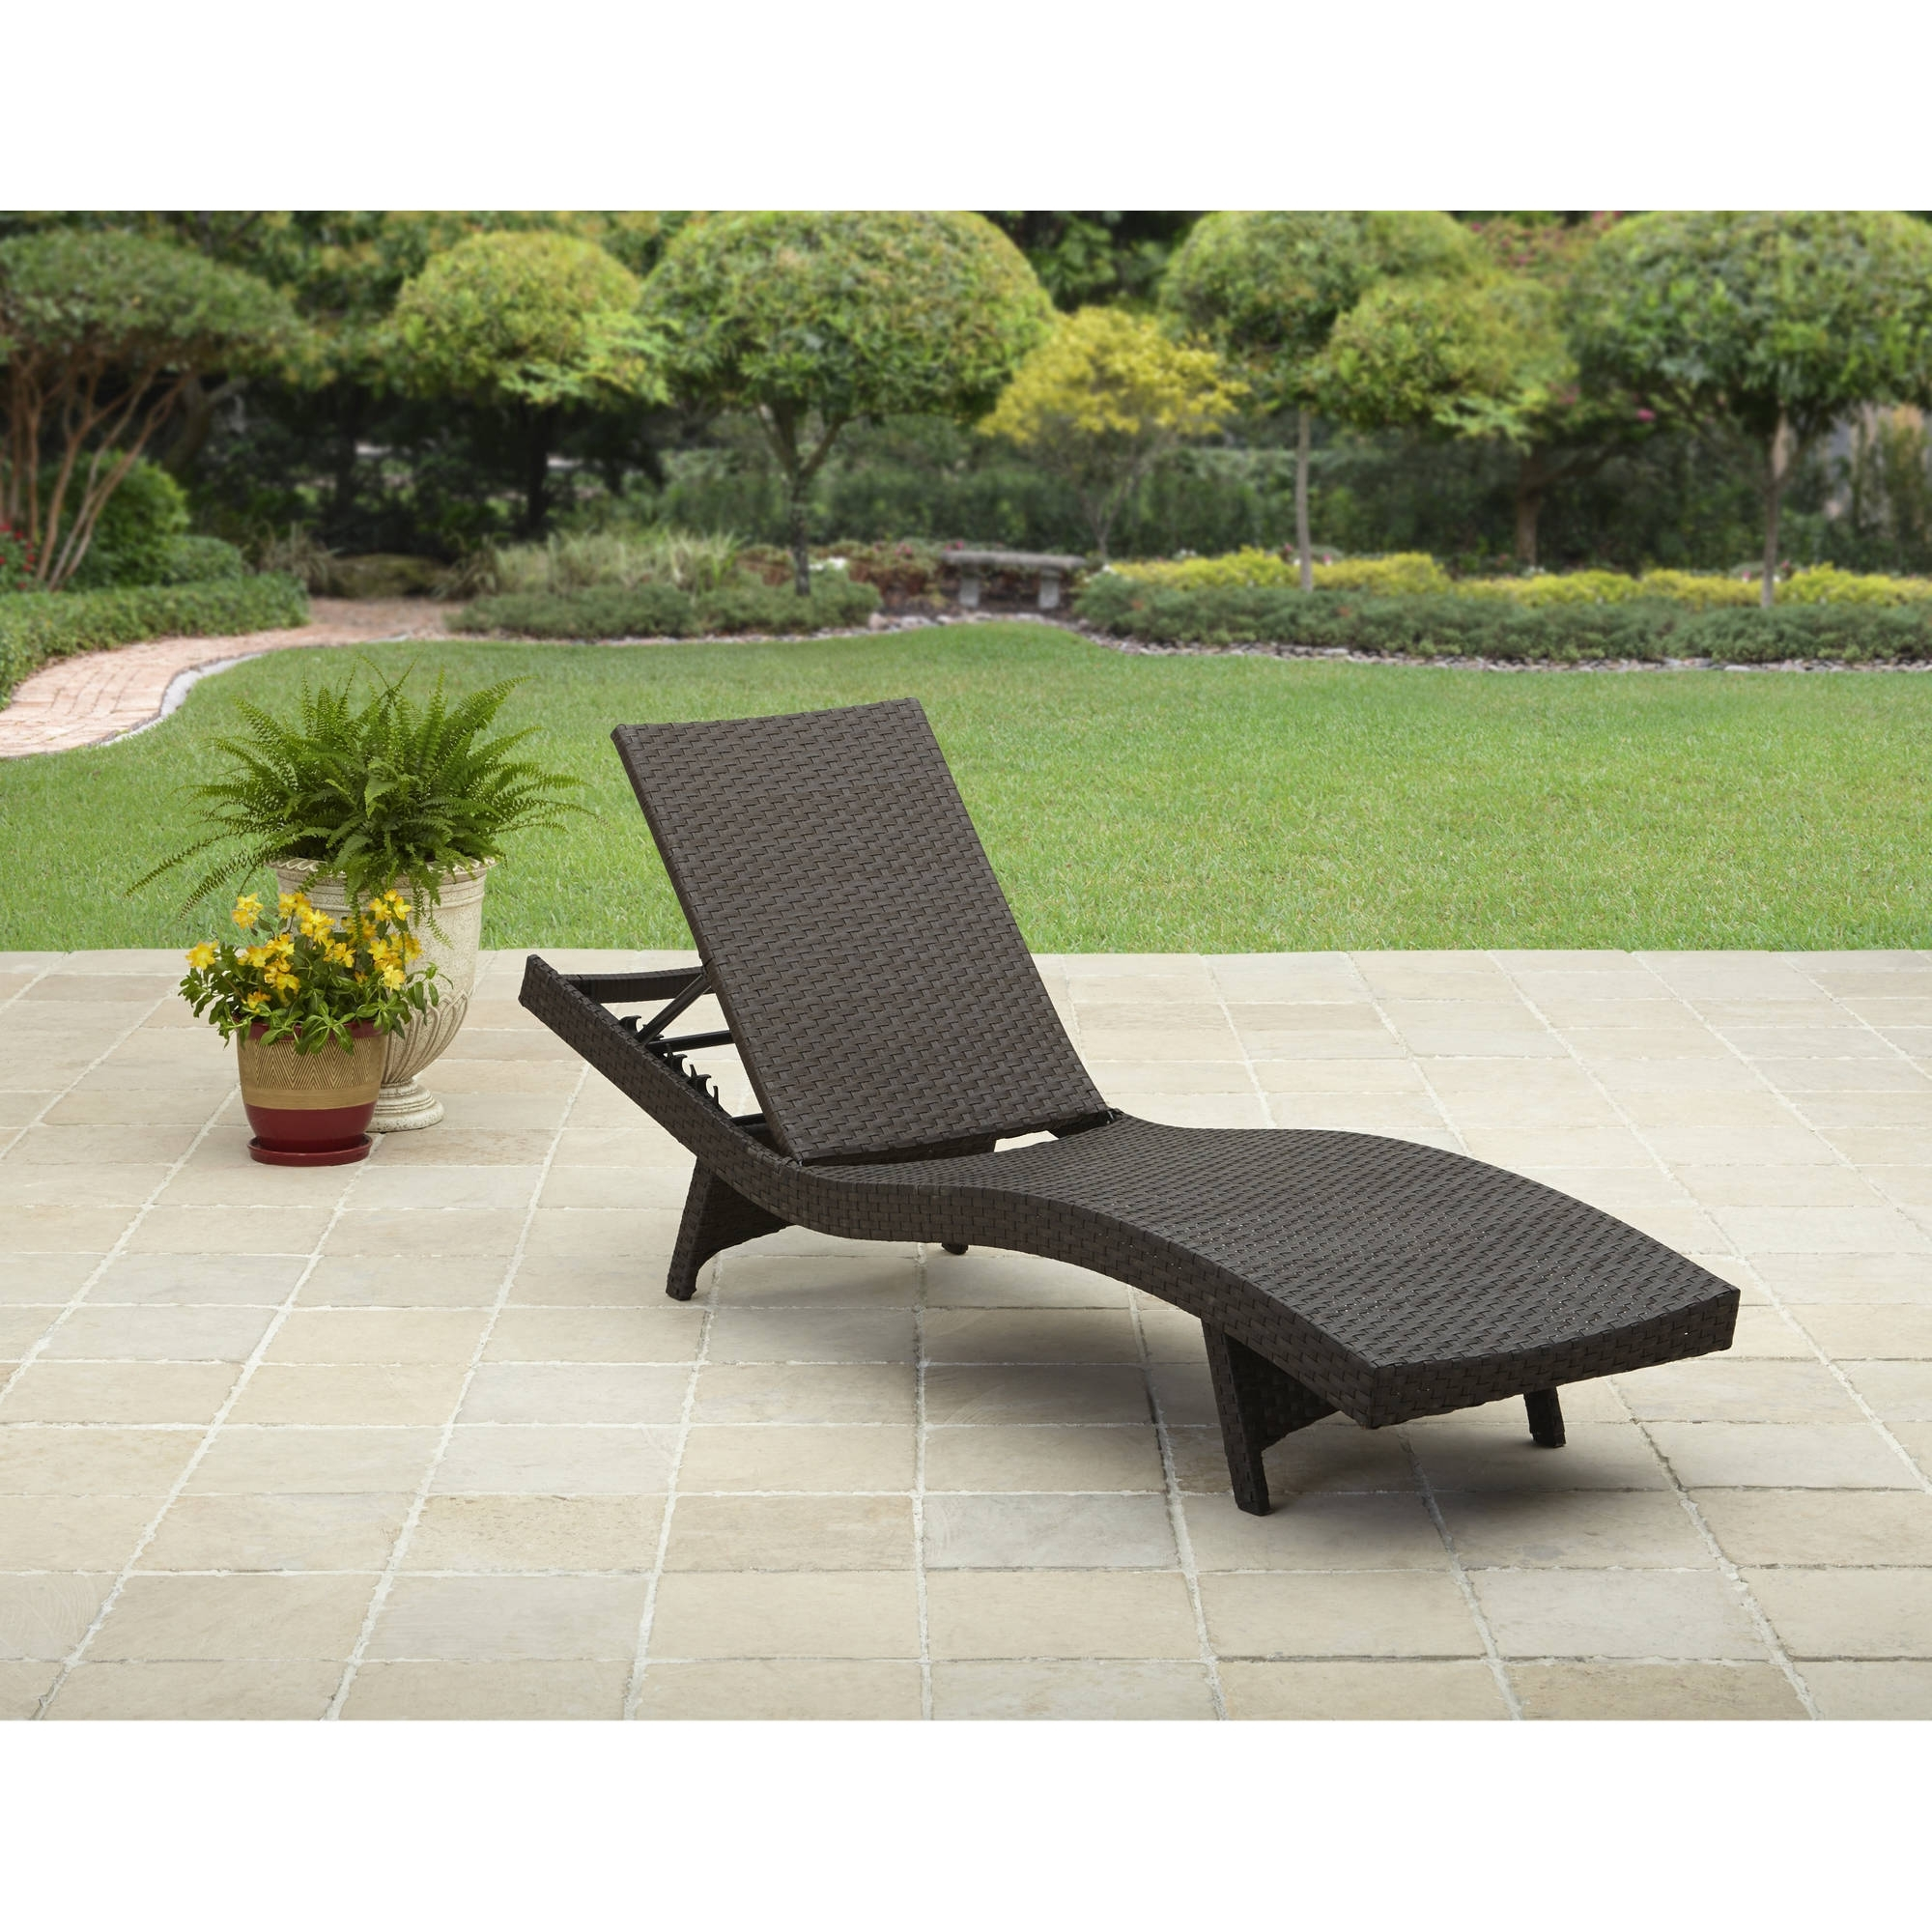 Better Homes And Gardens Avila Beach Chaise – Walmart Regarding Well Known Walmart Chaise Lounge Chairs (View 6 of 15)